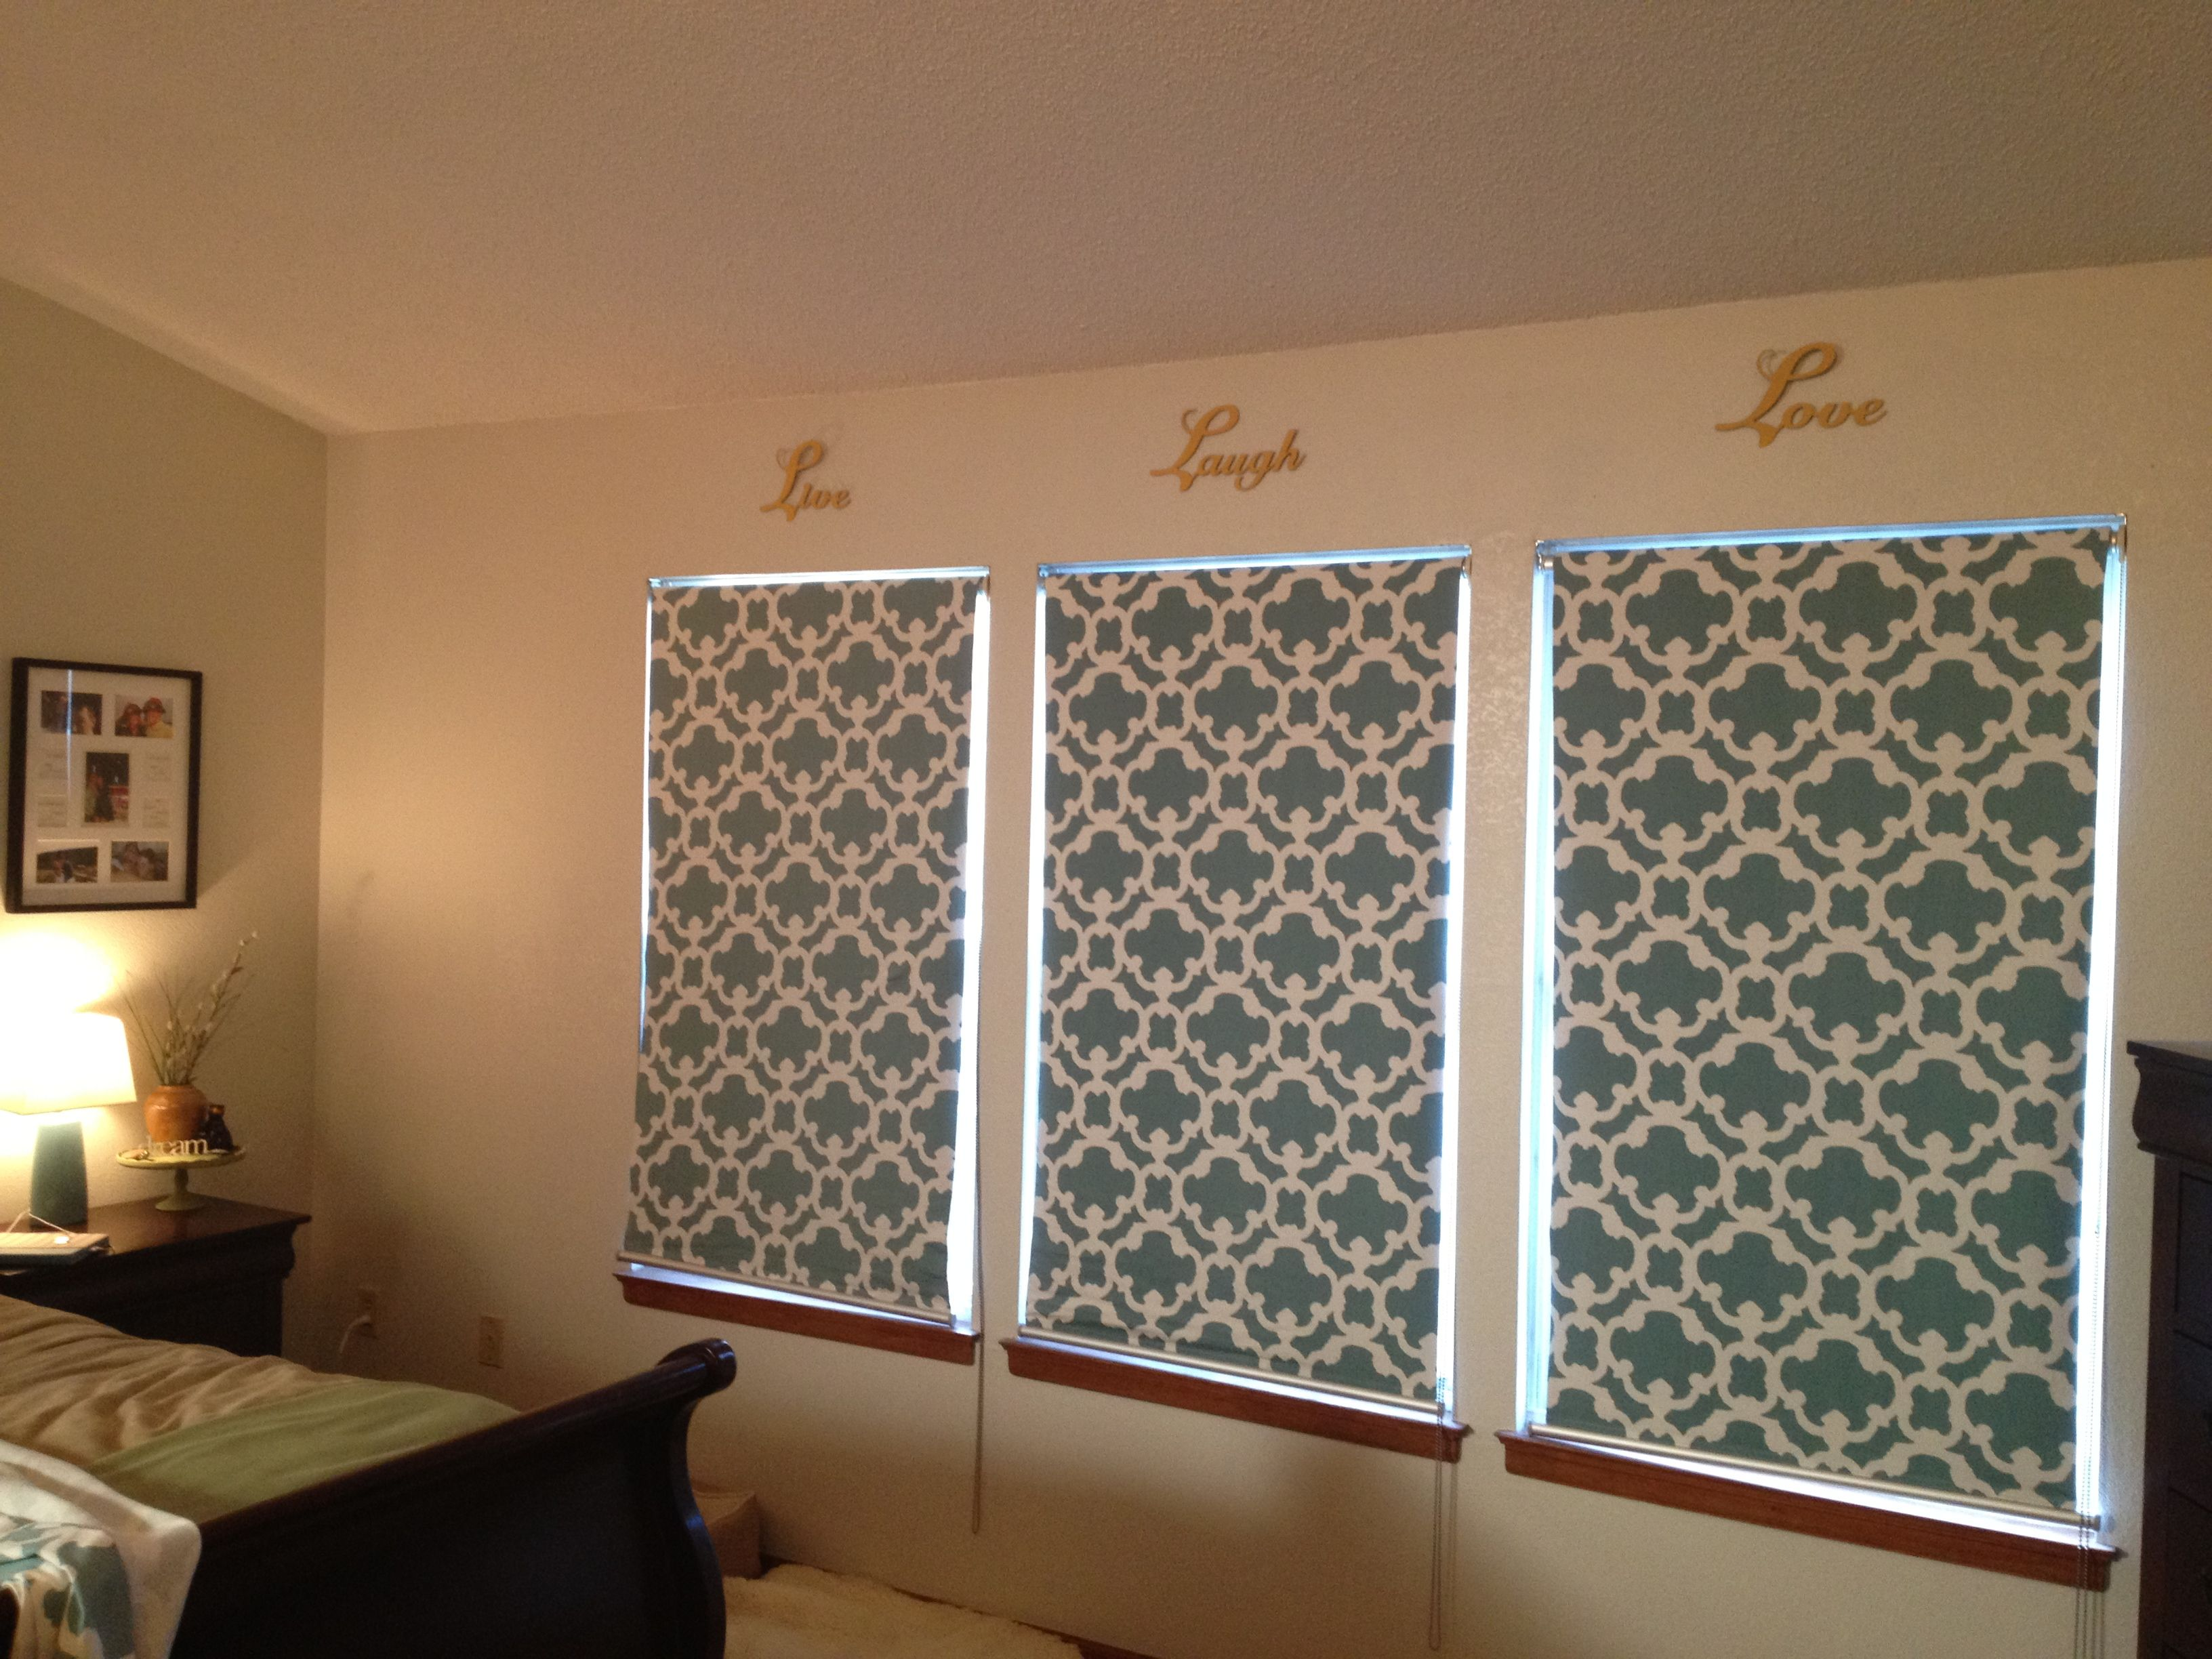 Shower Curtain From Target Fabric Glue Over Existing Roller Blinds Home Is Where The